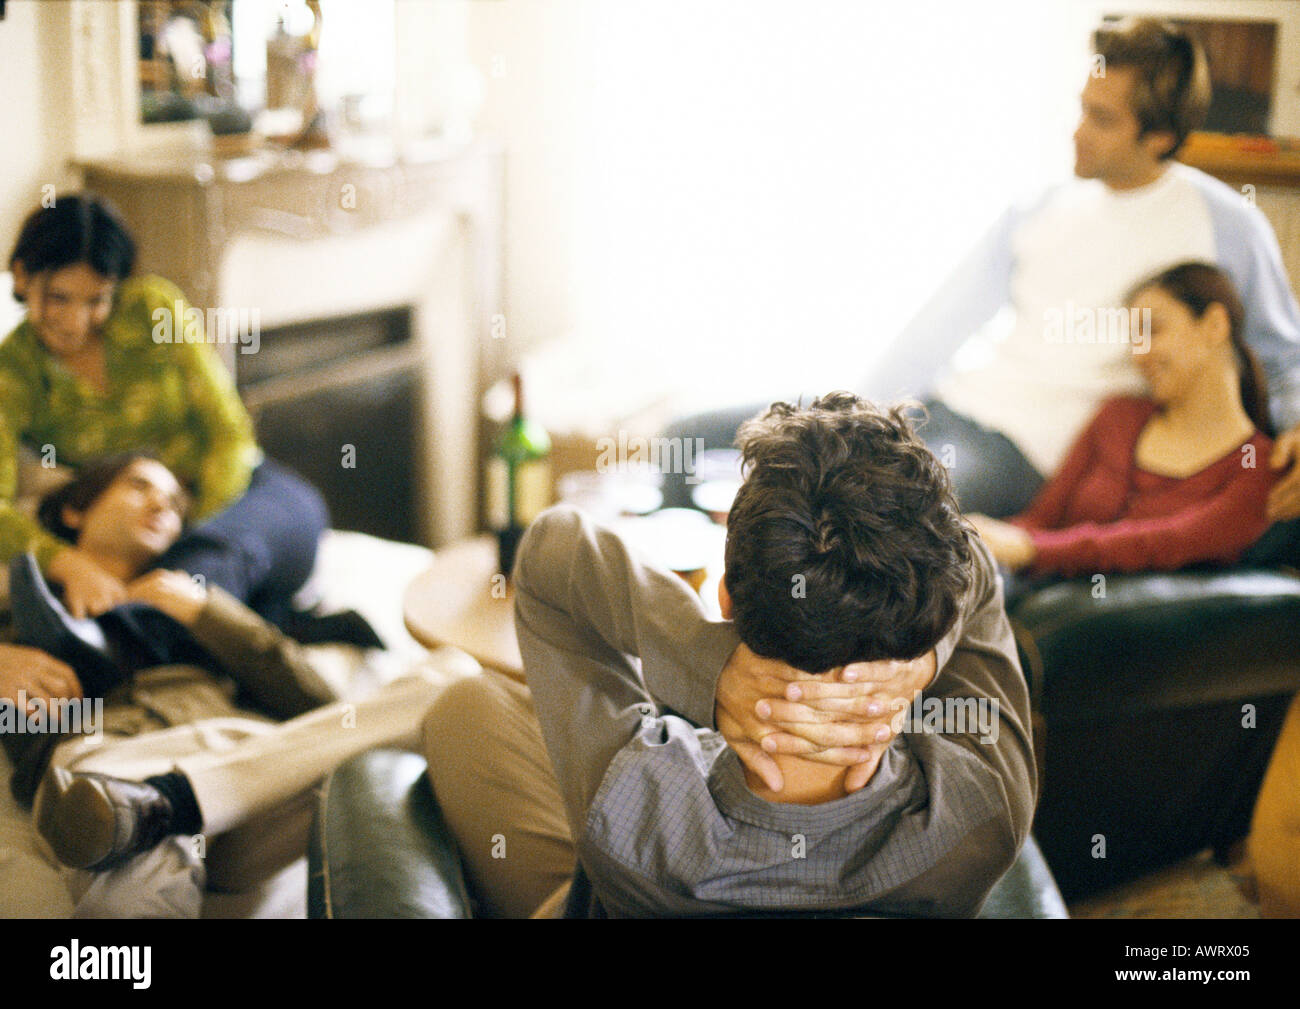 Five Young People Sitting In Living Room Stock Photo 5434884 Alamy